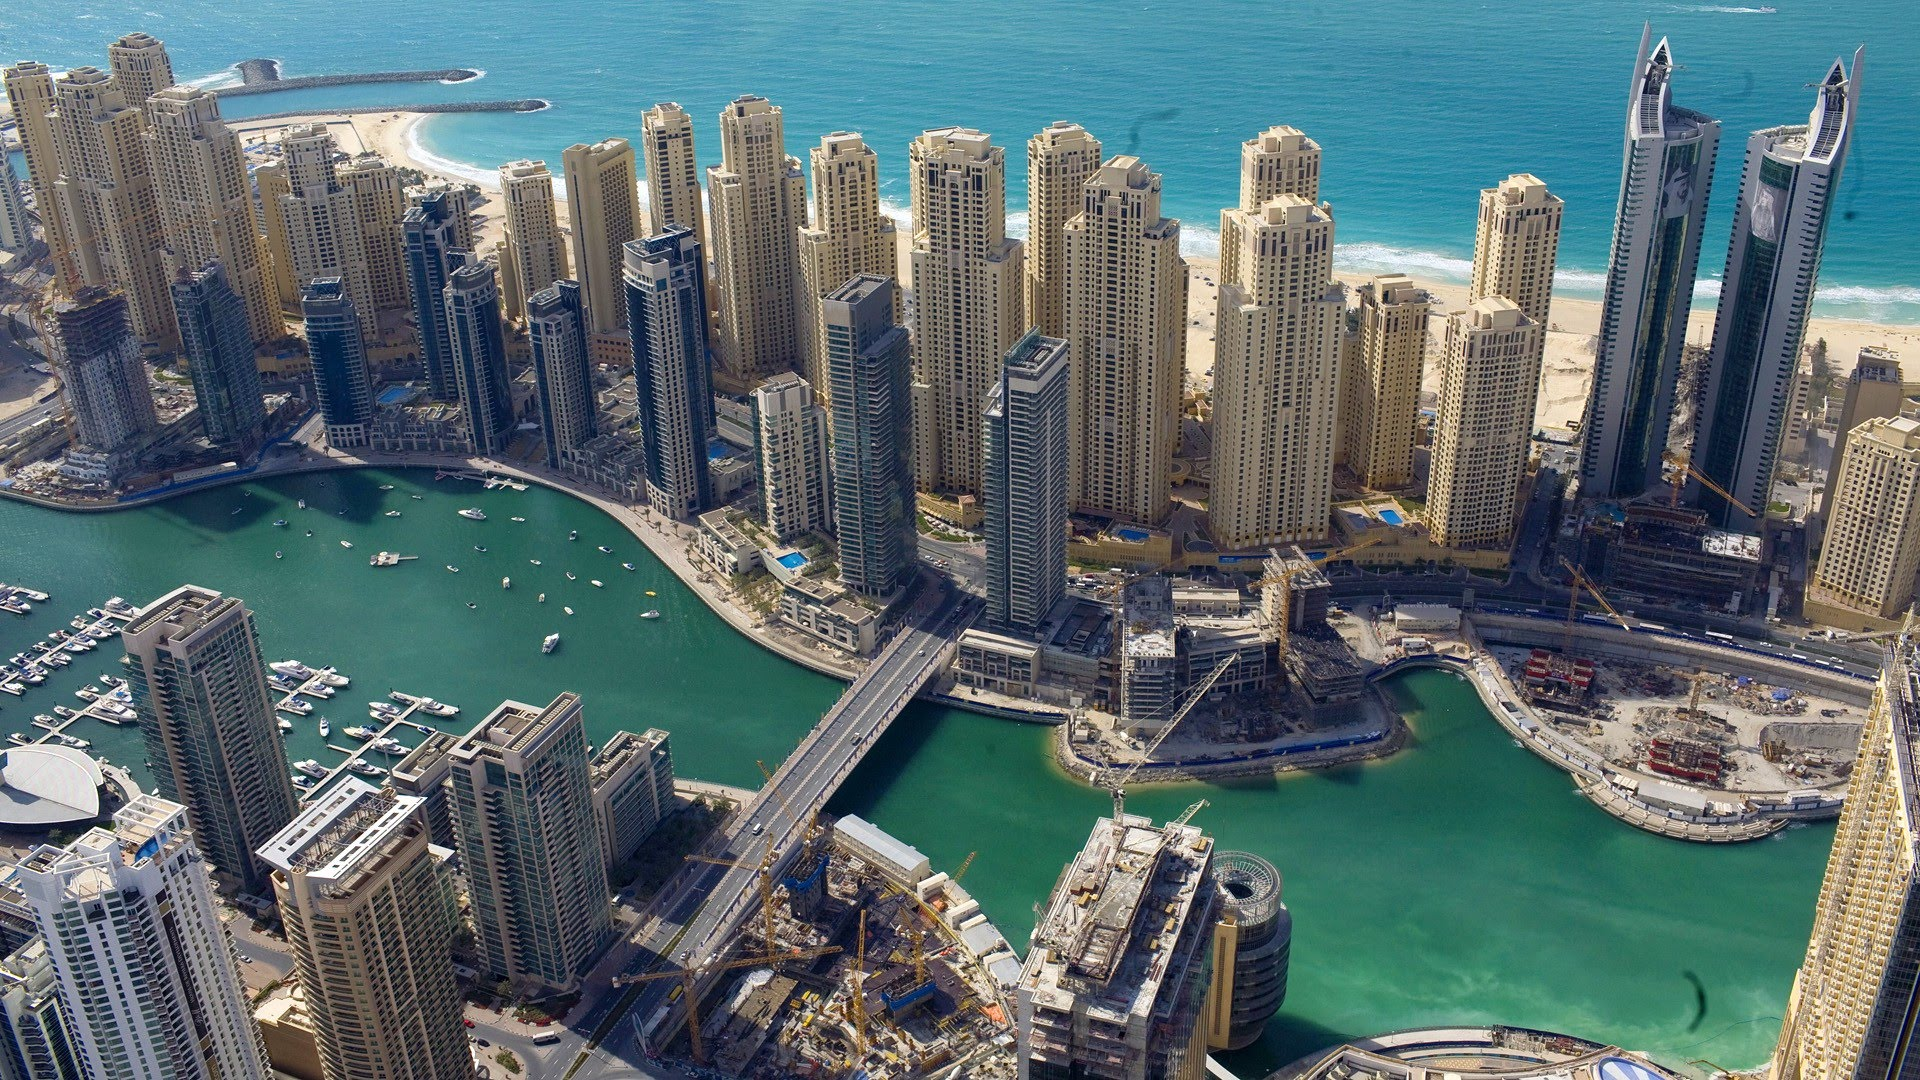 Investment of $2 billion in Dubai Real estate by Indians